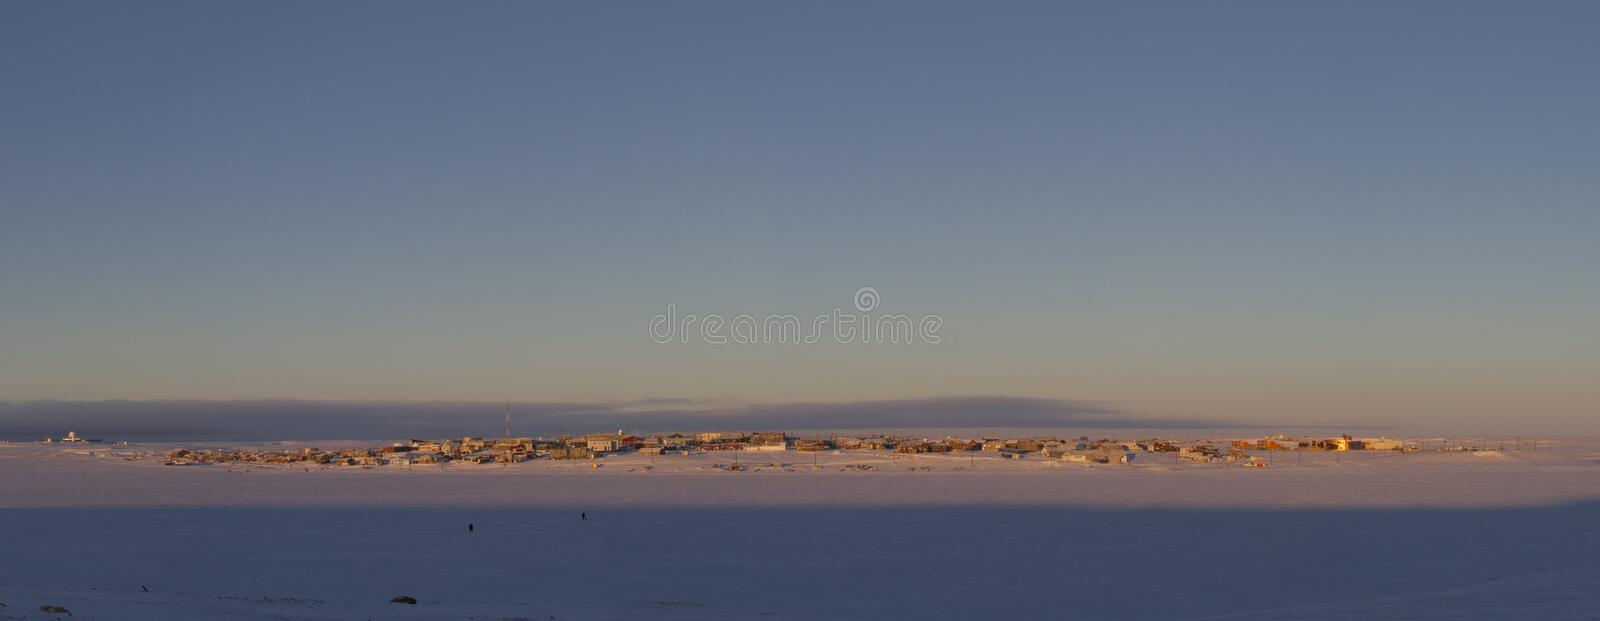 Panoramic view of Cambridge Bay, Nunavut, a far northern arctic community, during an early morning sunrise stock images